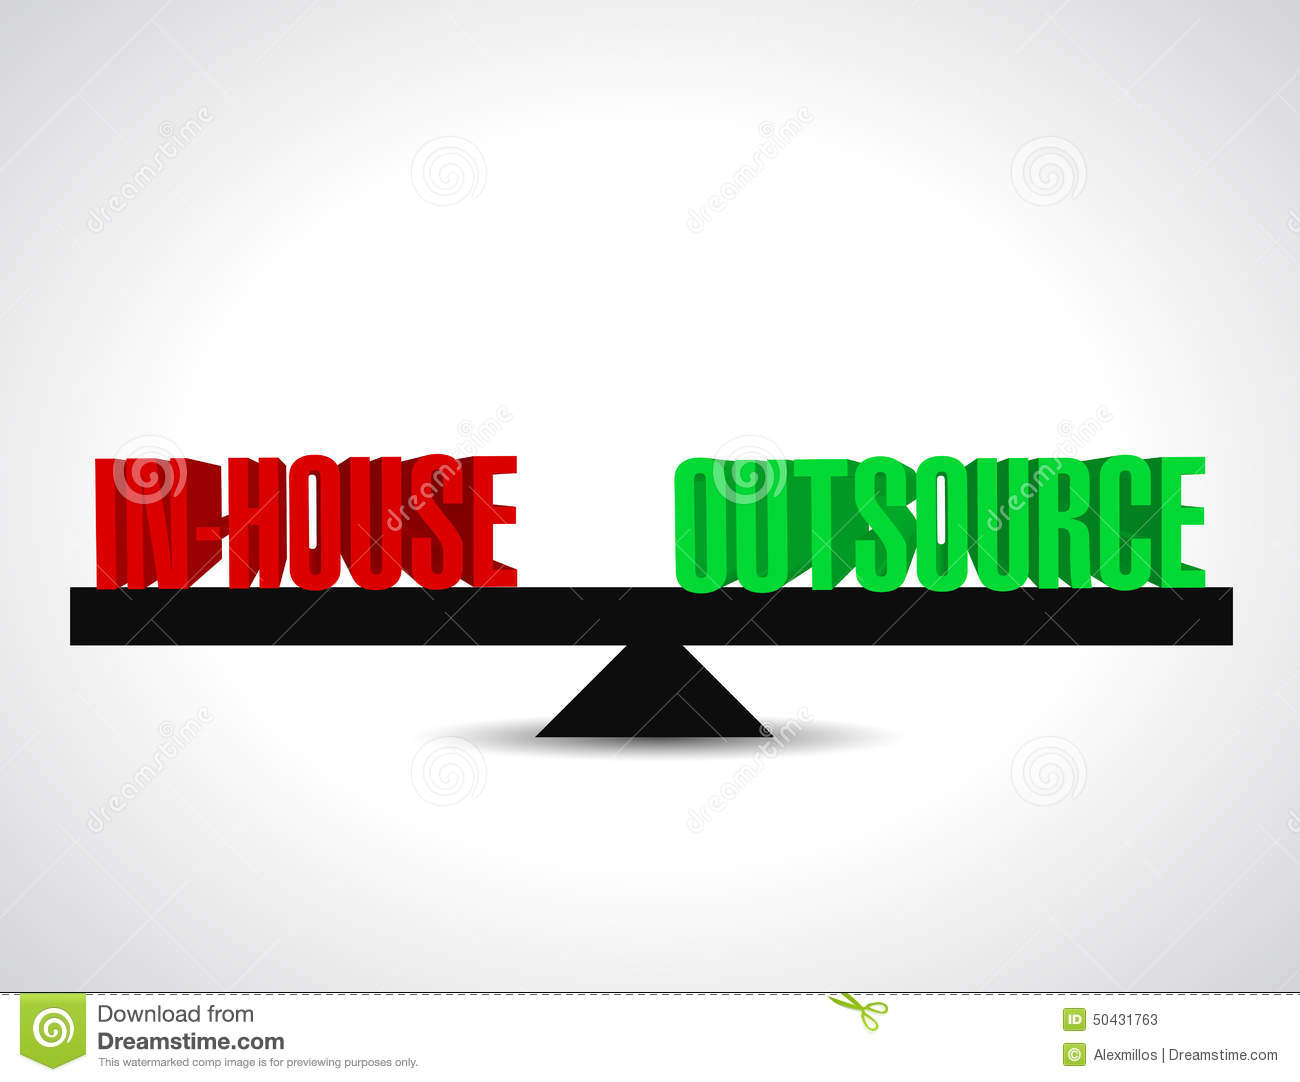 inhouse and outsource balance illustration design stock